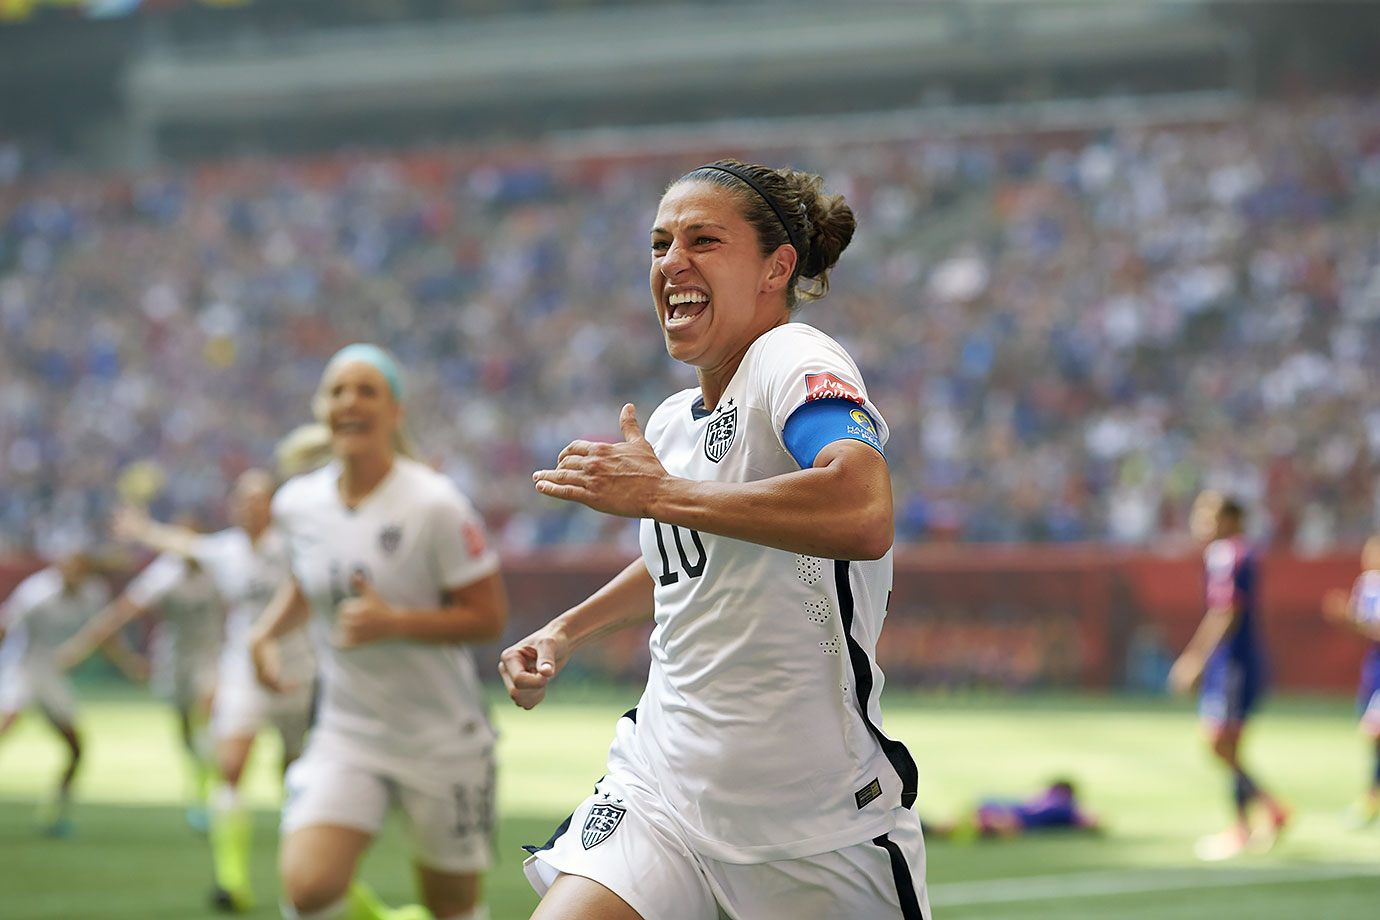 In possibly the greatest performance in World Cup history, Lloyd scored three goals within 16 minutes in the finals to help the U.S. beat Japan, 5-2. Amazingly, she even scored a goal from midfield that sailed over the outstretched arms of the Japanese goalie.